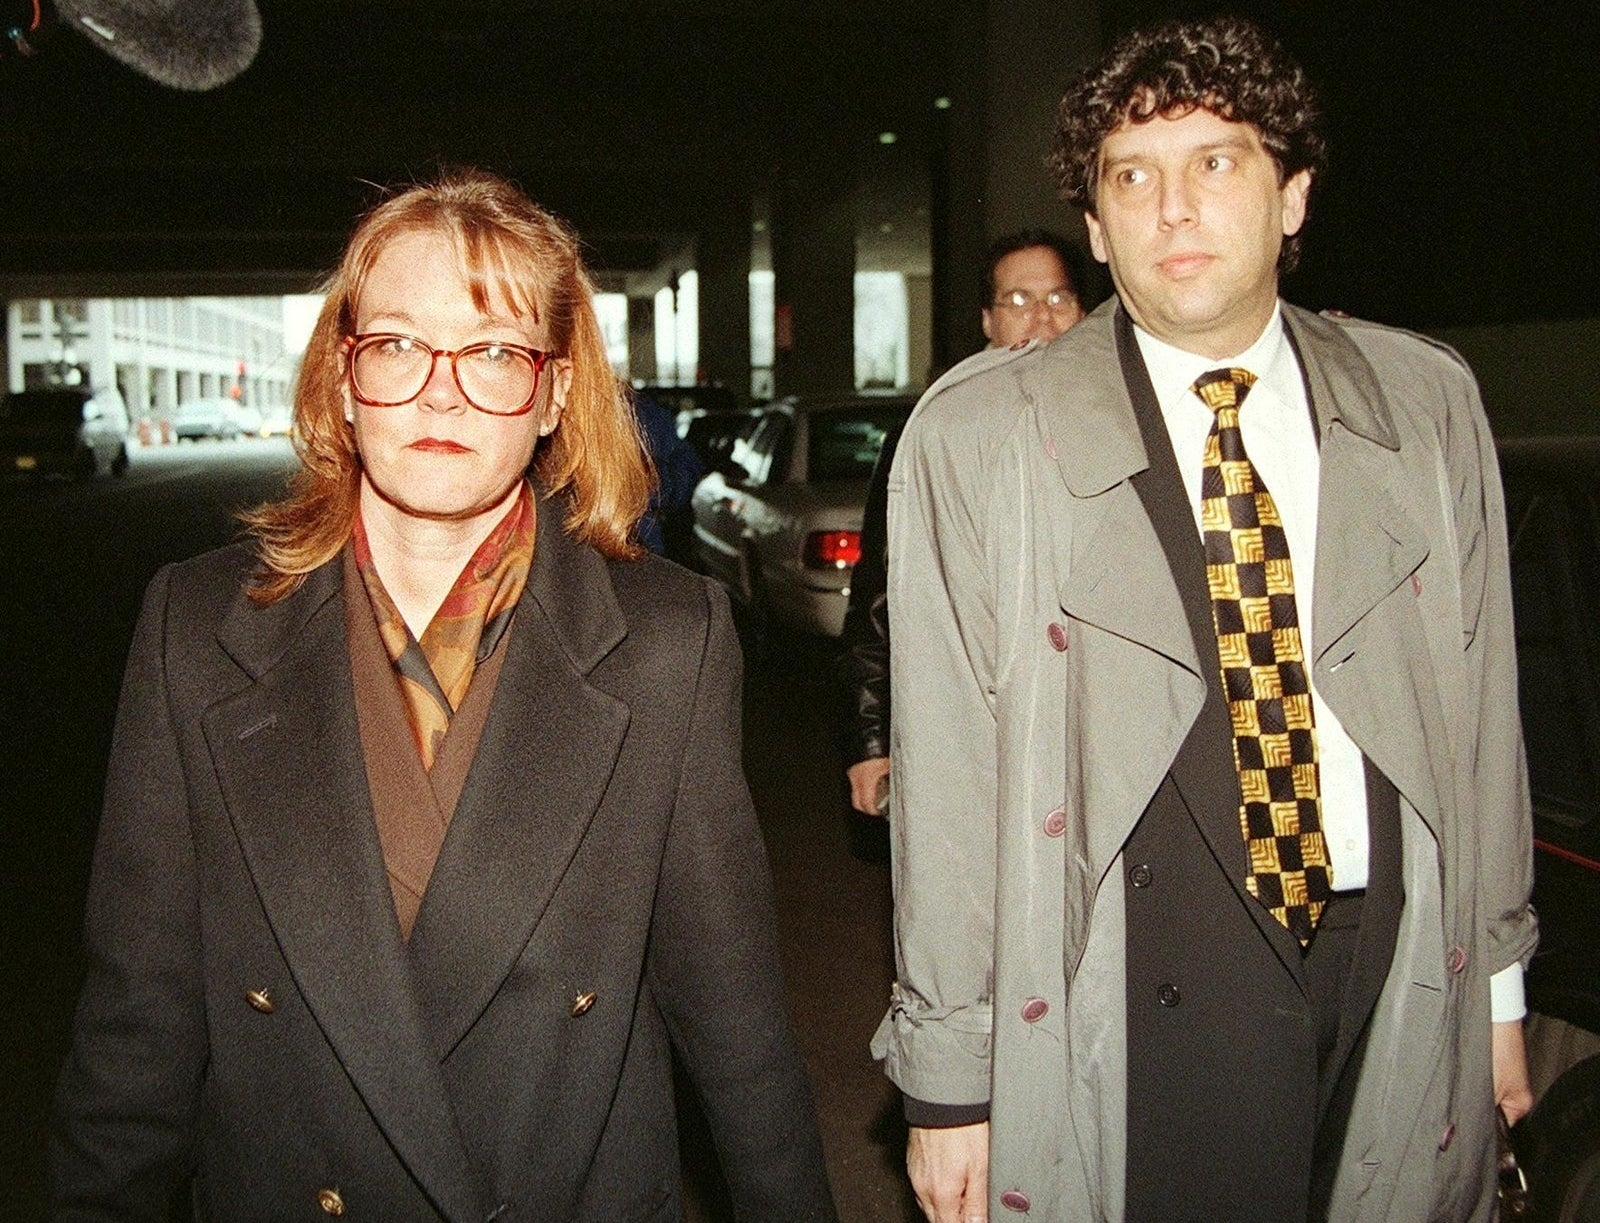 The range of staffers hauled before a grand jury included a National Archives staffer, Ellen McCathran, pictured here with her lawyer after her testimony in March 1998.